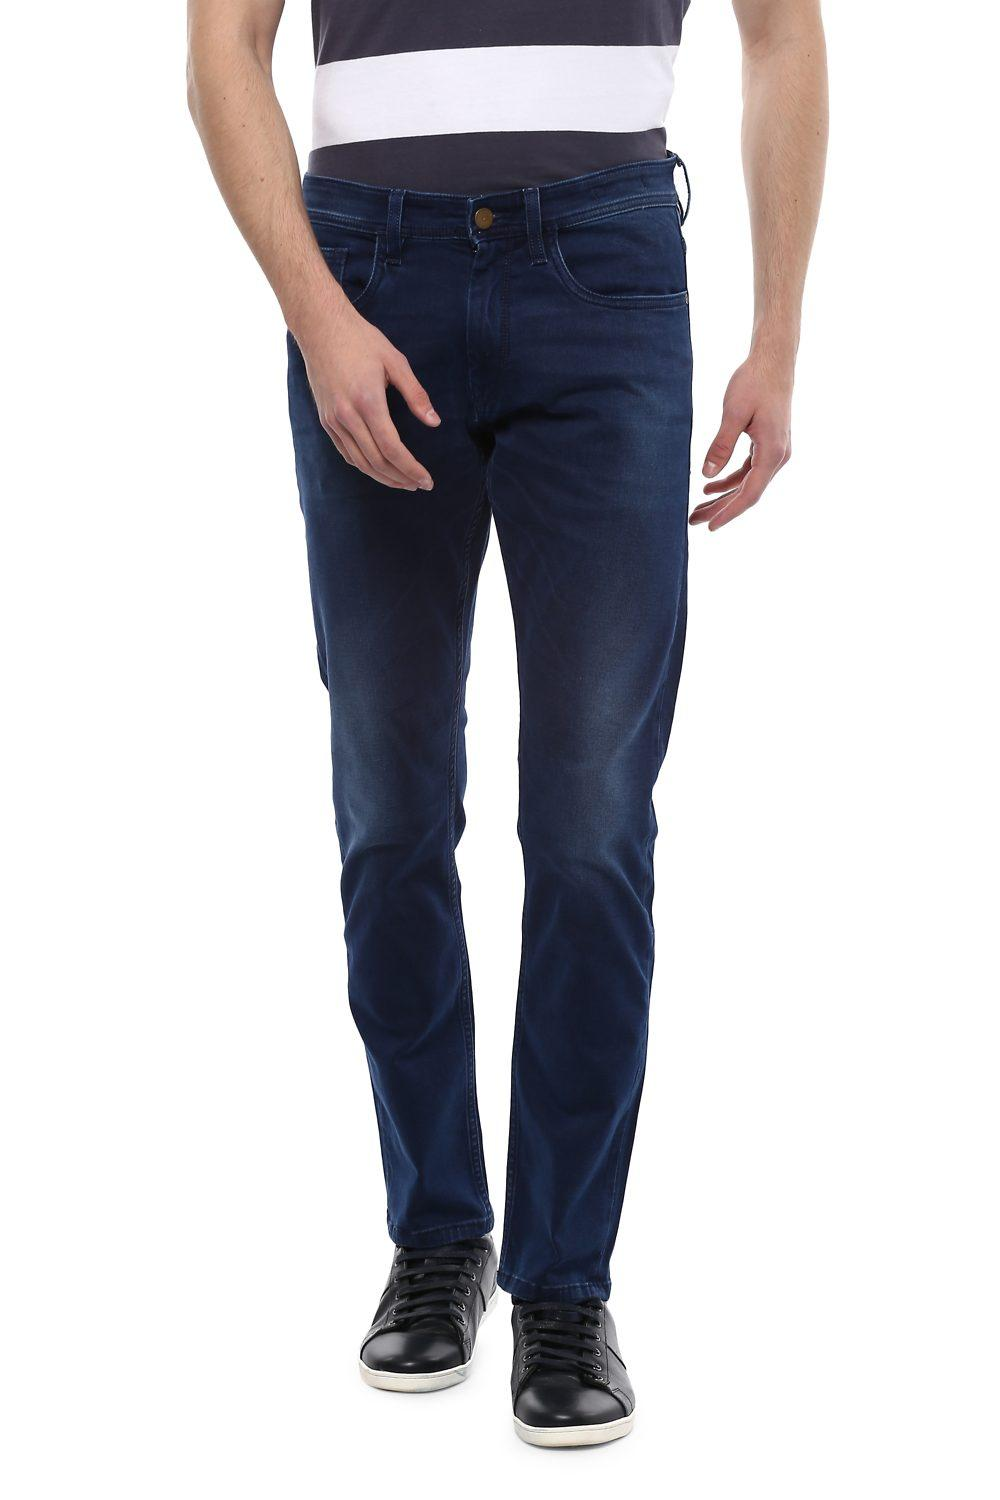 best service 94e3b 6763a Solly Jeans Co Jeans, Allen Solly Blue Jeans for Men at Allensolly.com